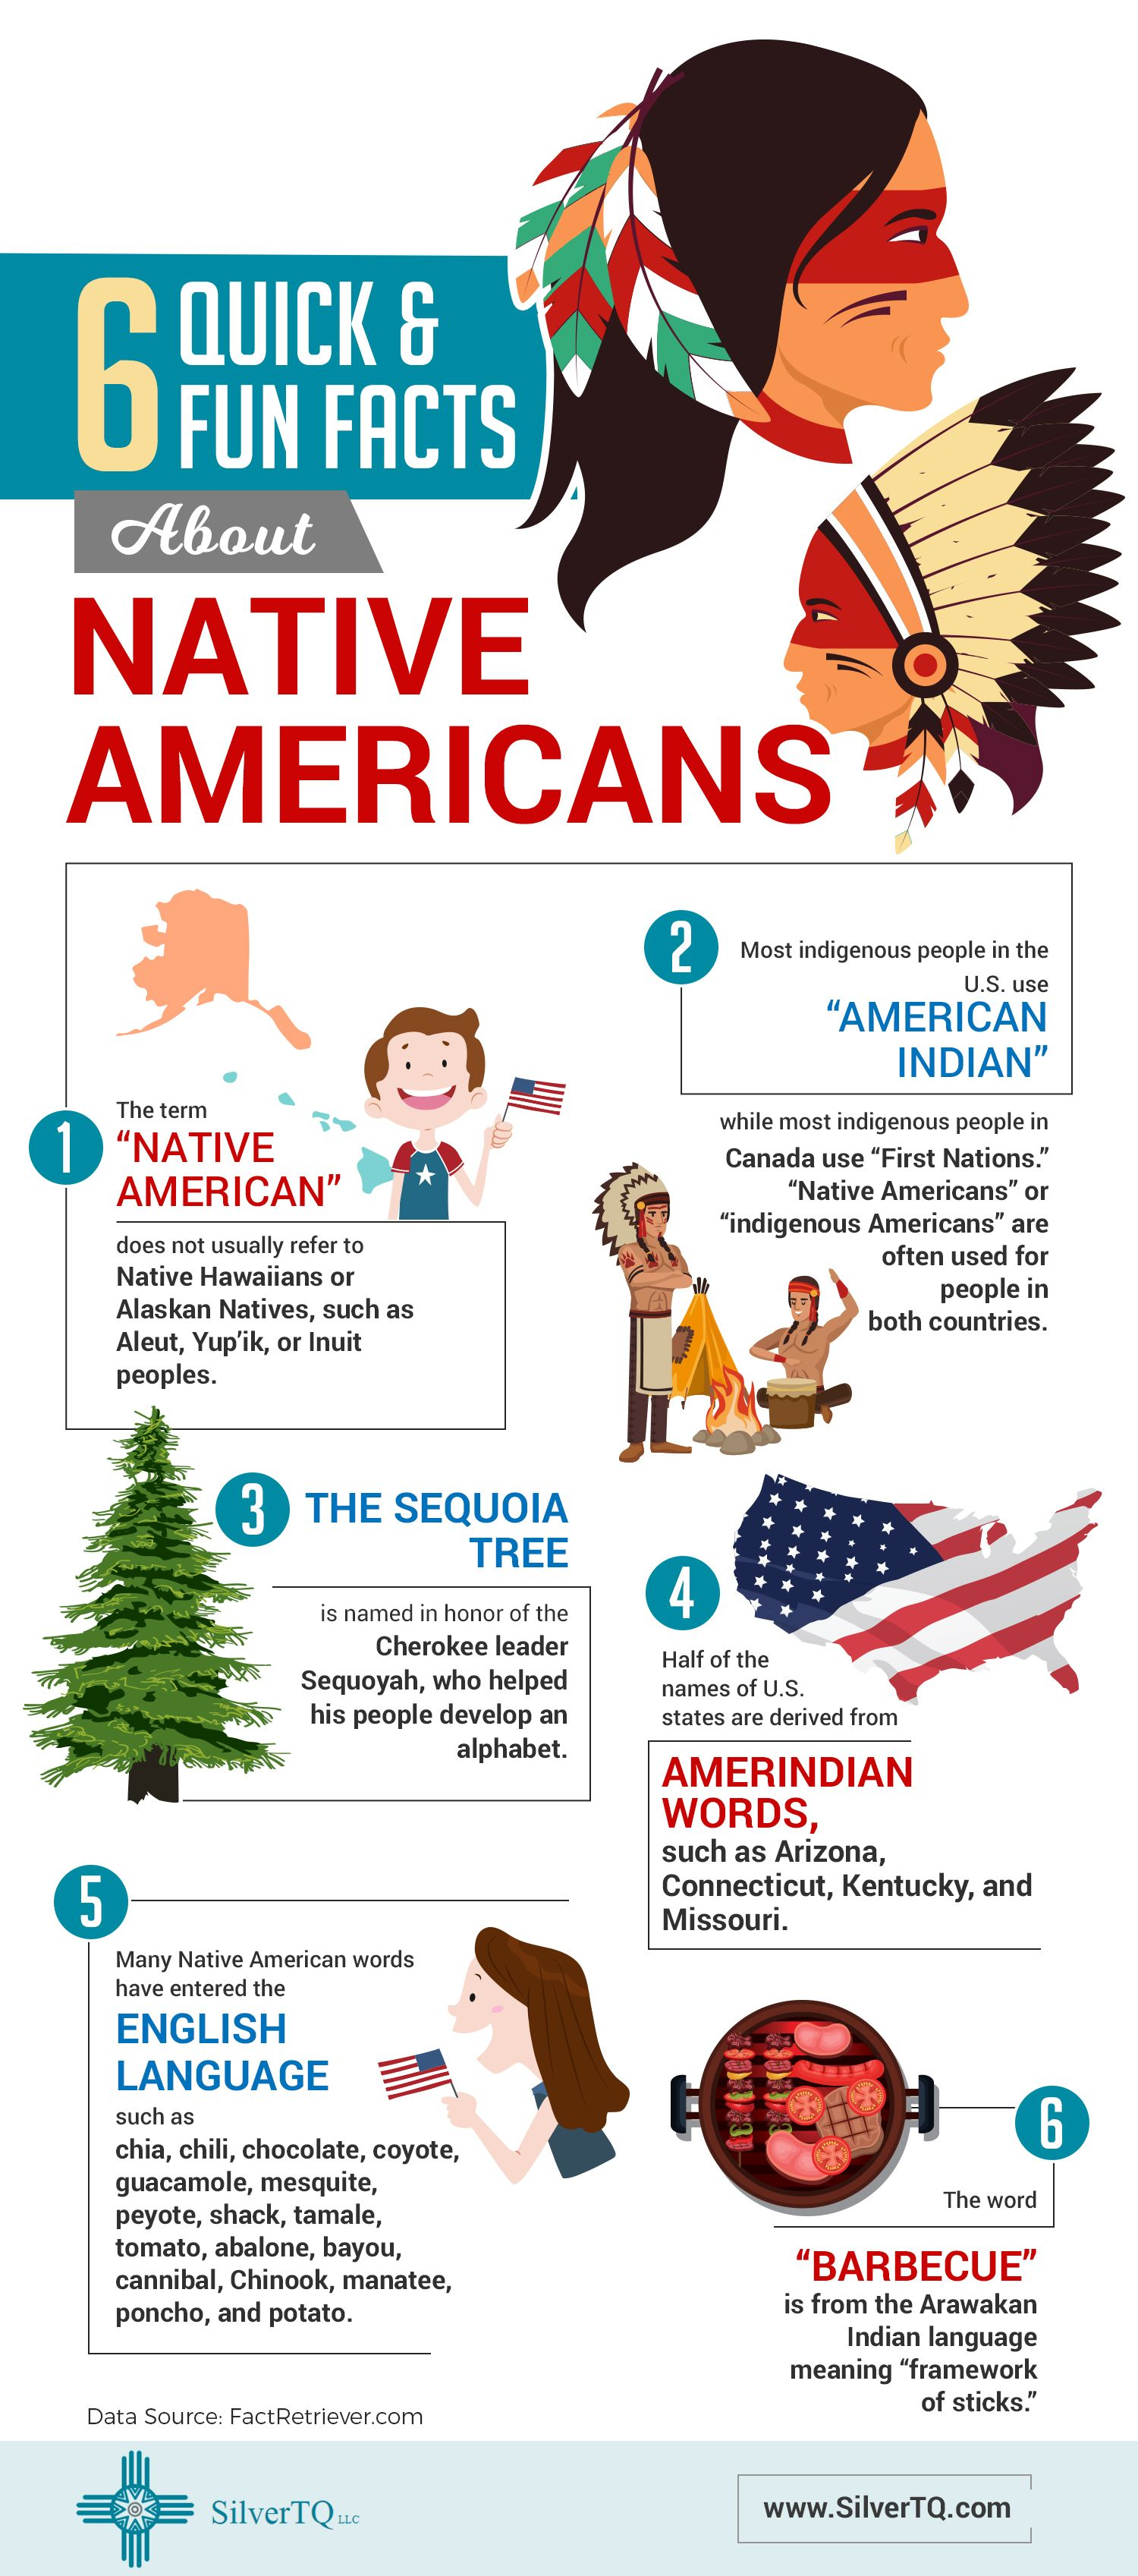 This Infographic Provides 6 Fun Facts About Native